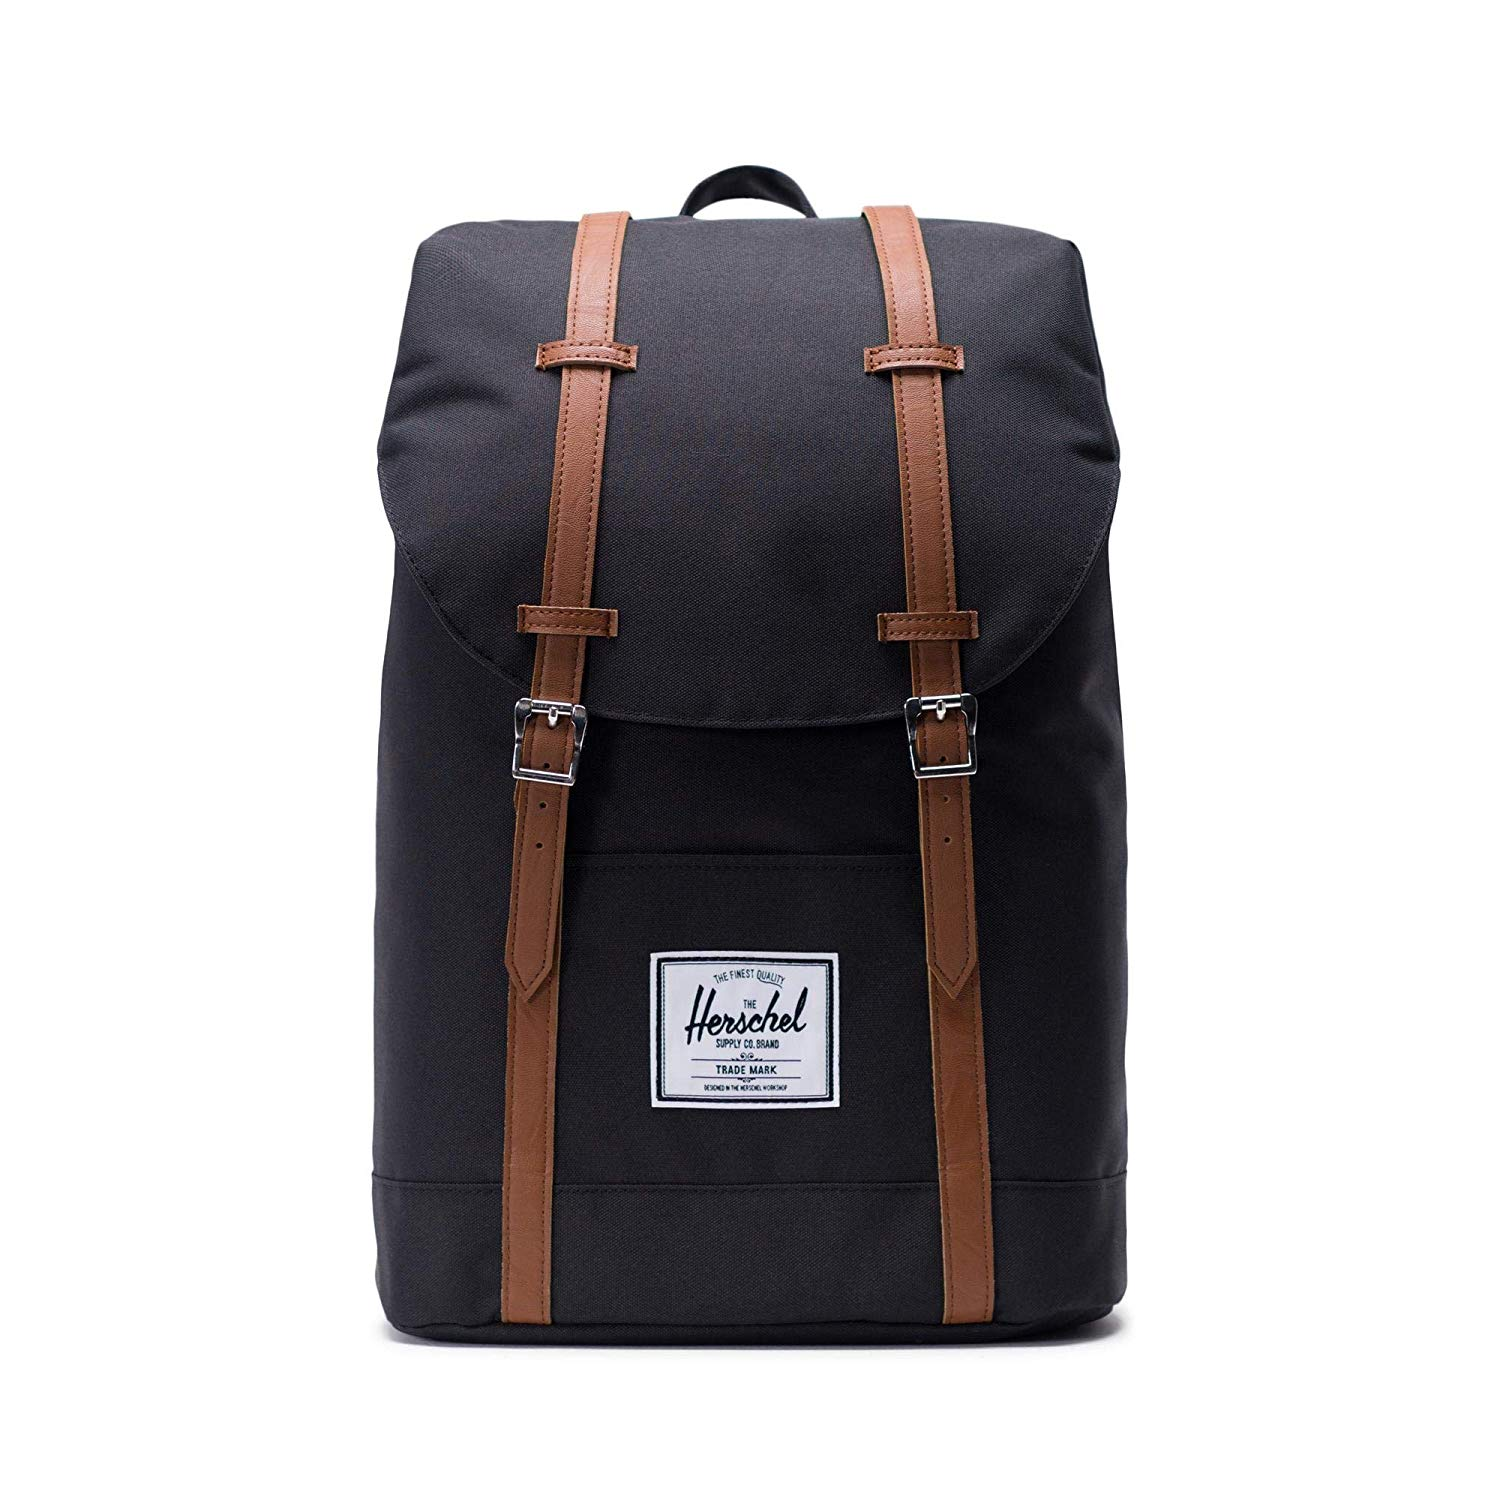 Herschel Supply Co. | Best Backpacks for College